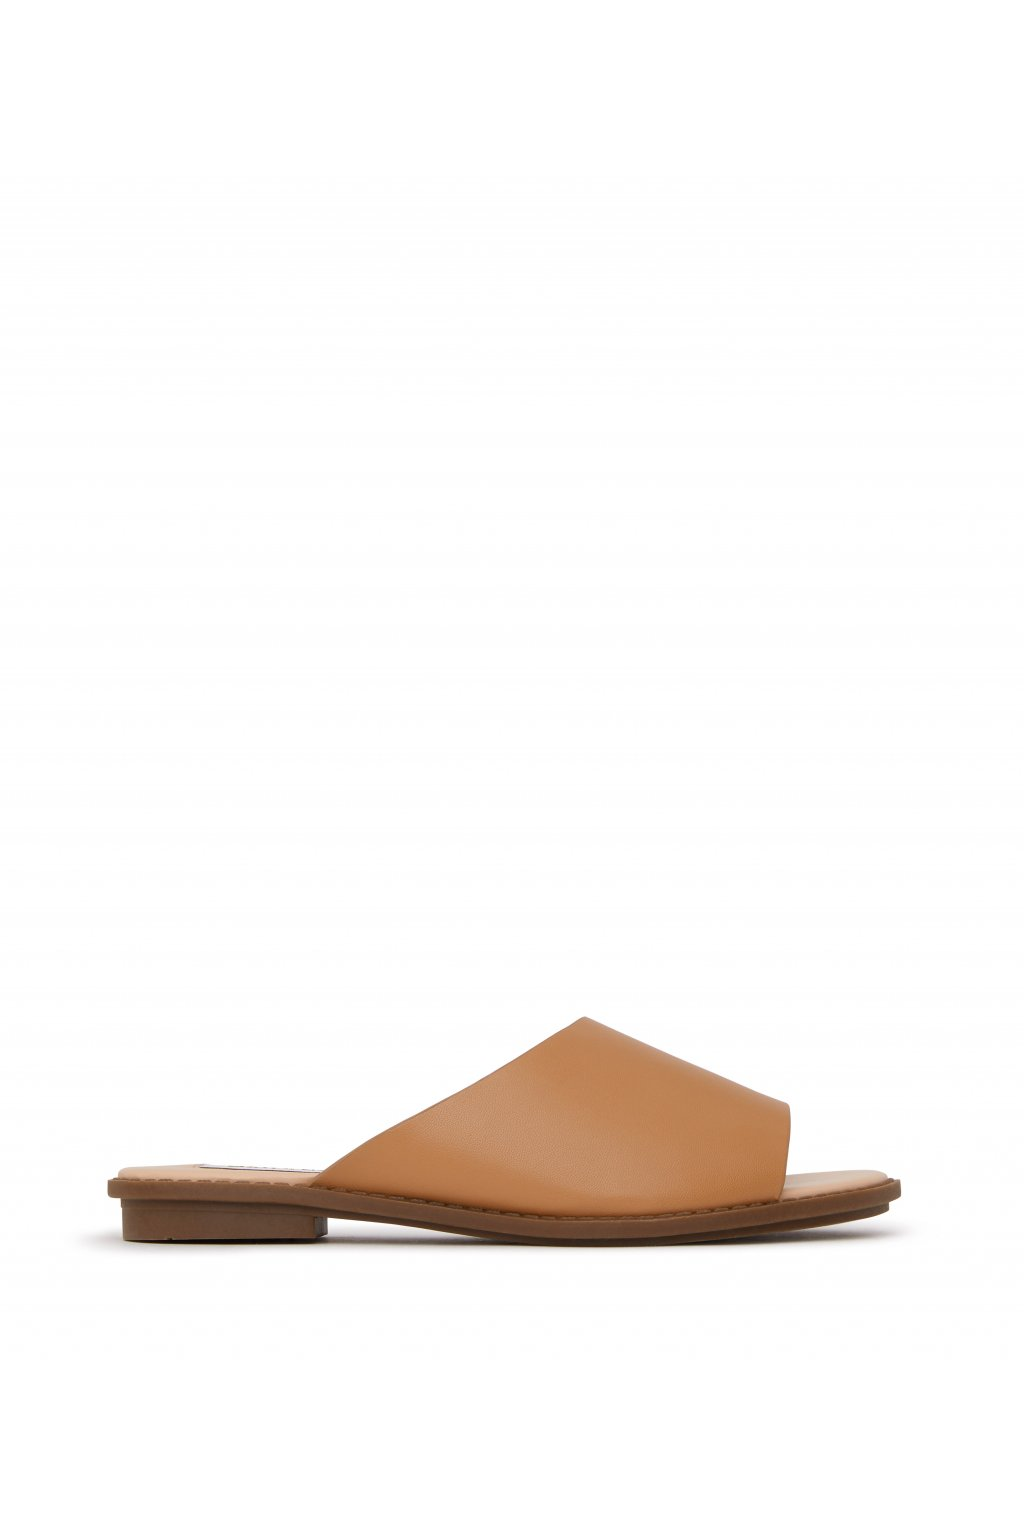 ss20 shoes lunna nude 1